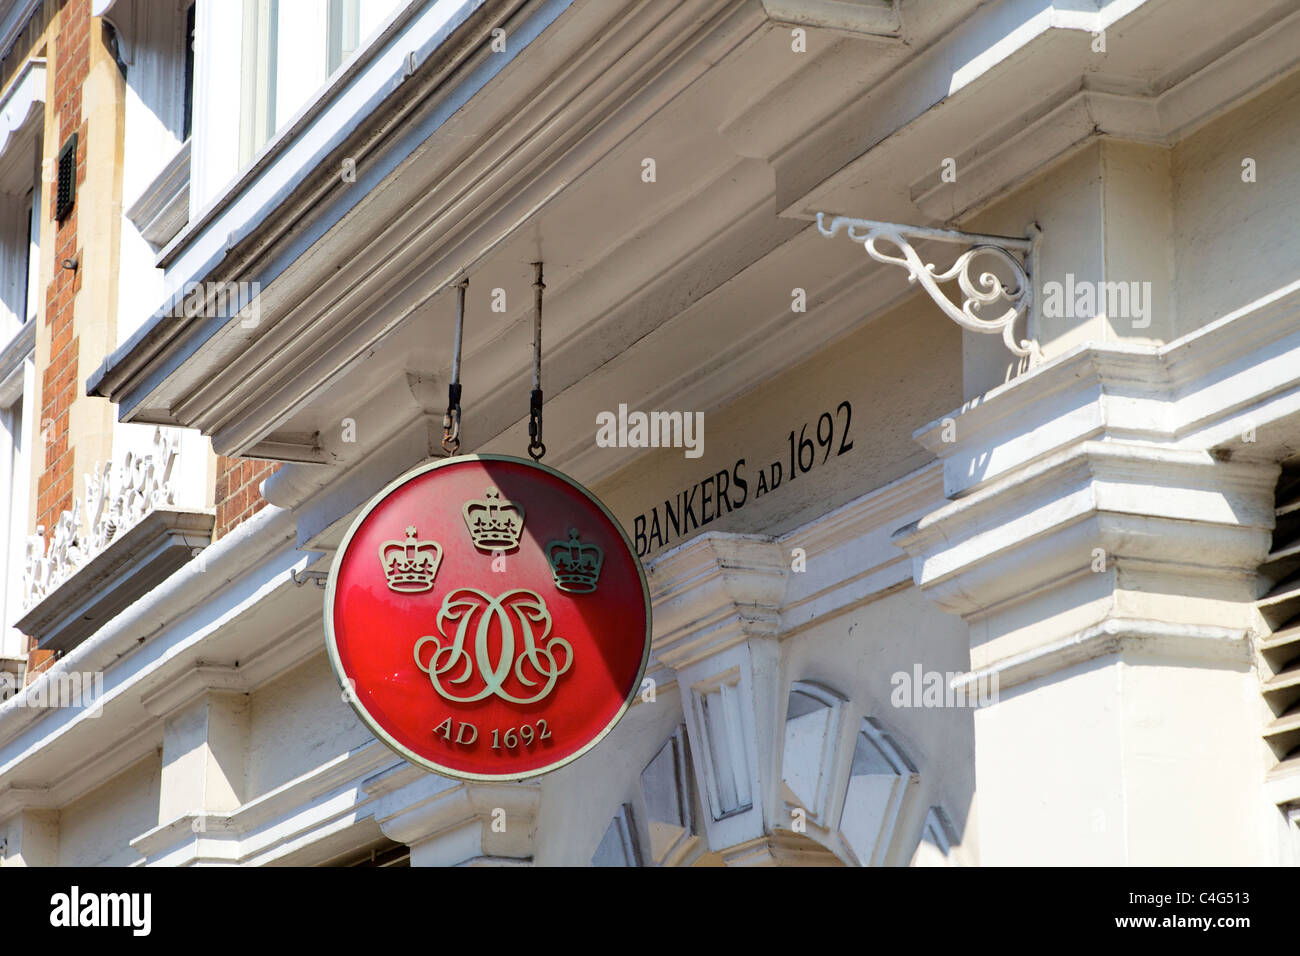 Coutts & Co Bankers High Street Eton Berkshire England - Stock Image